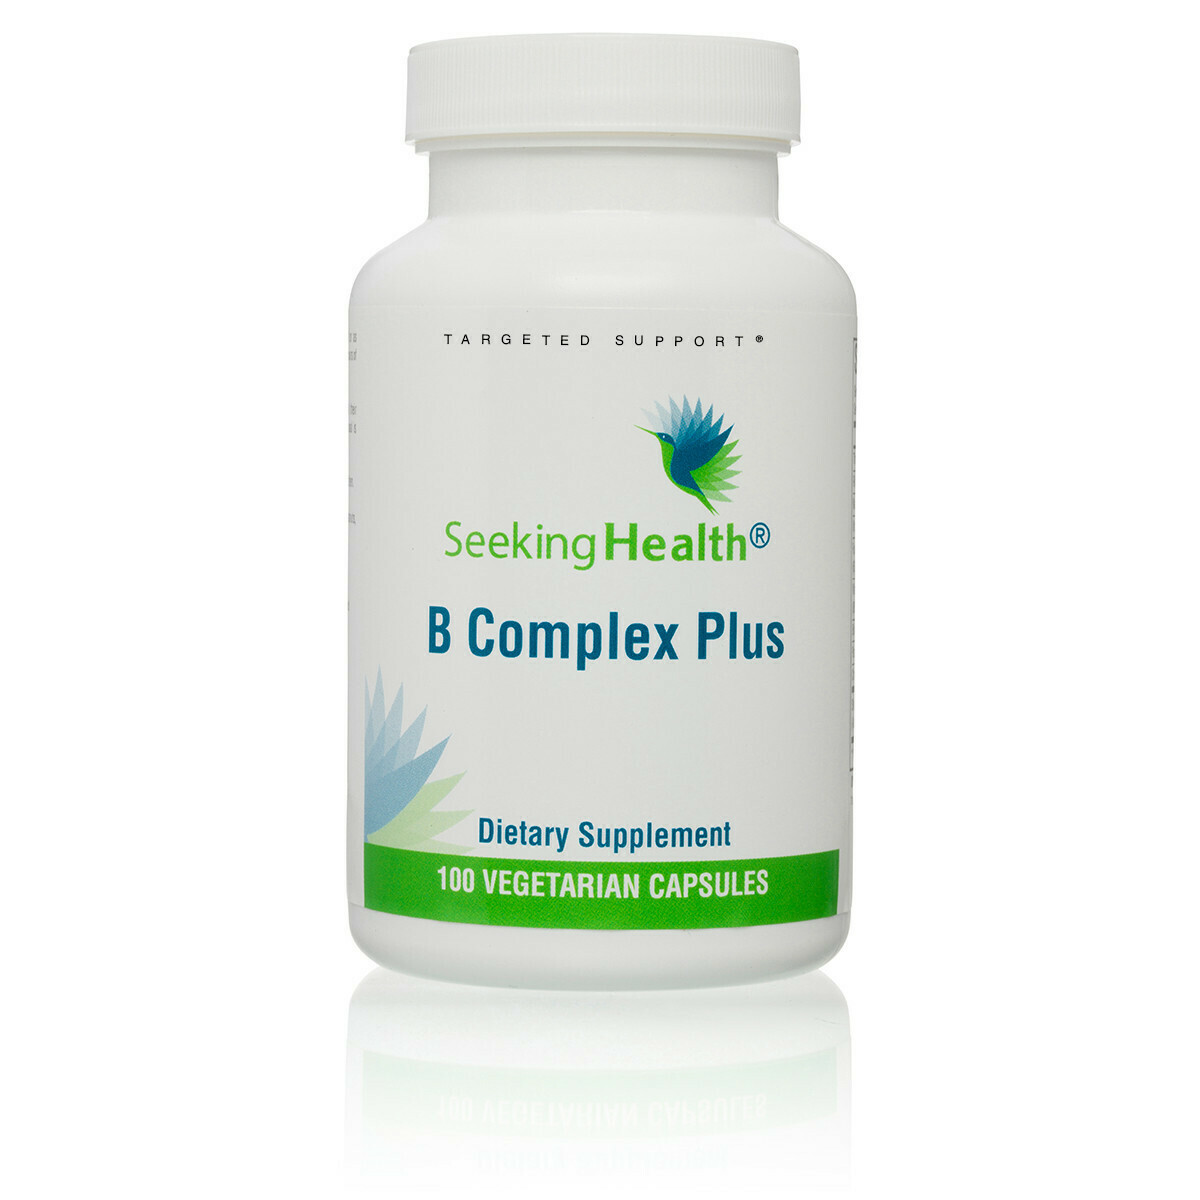 B COMPLEX PLUS - 100 CAPSULES Seeking Health